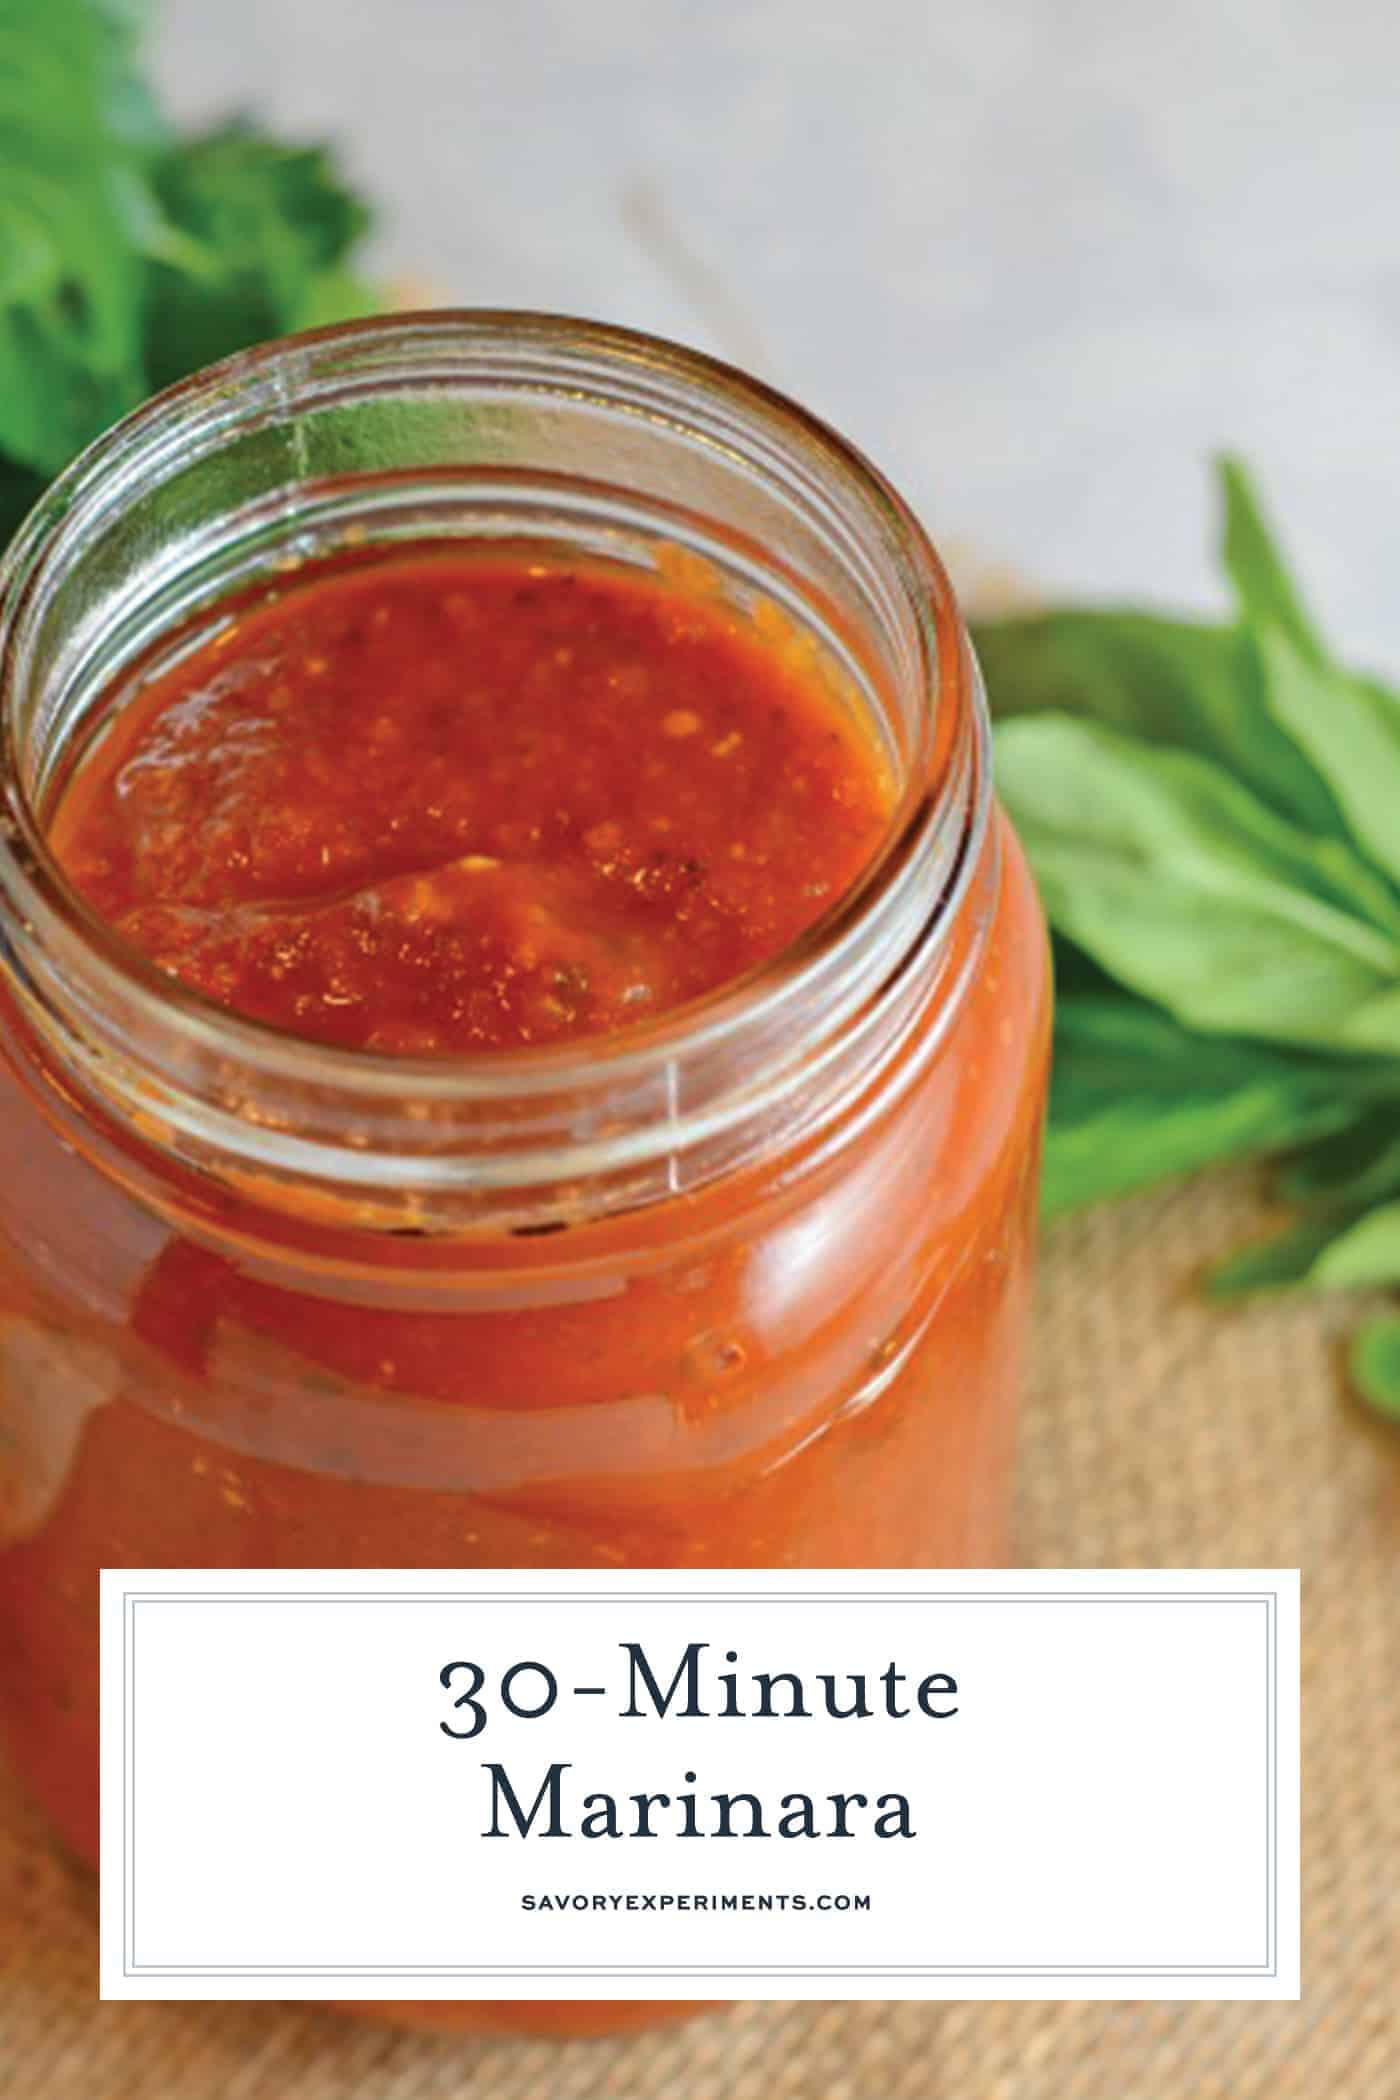 Marinara Sauce is one of the simplest of Italian sauces. Processes and tastes can vary greatly, but it all comes down to tomatoes, garlic, onion and herbs. #homemadetomatosauce #marinarasauce www.savoryexperiments.com